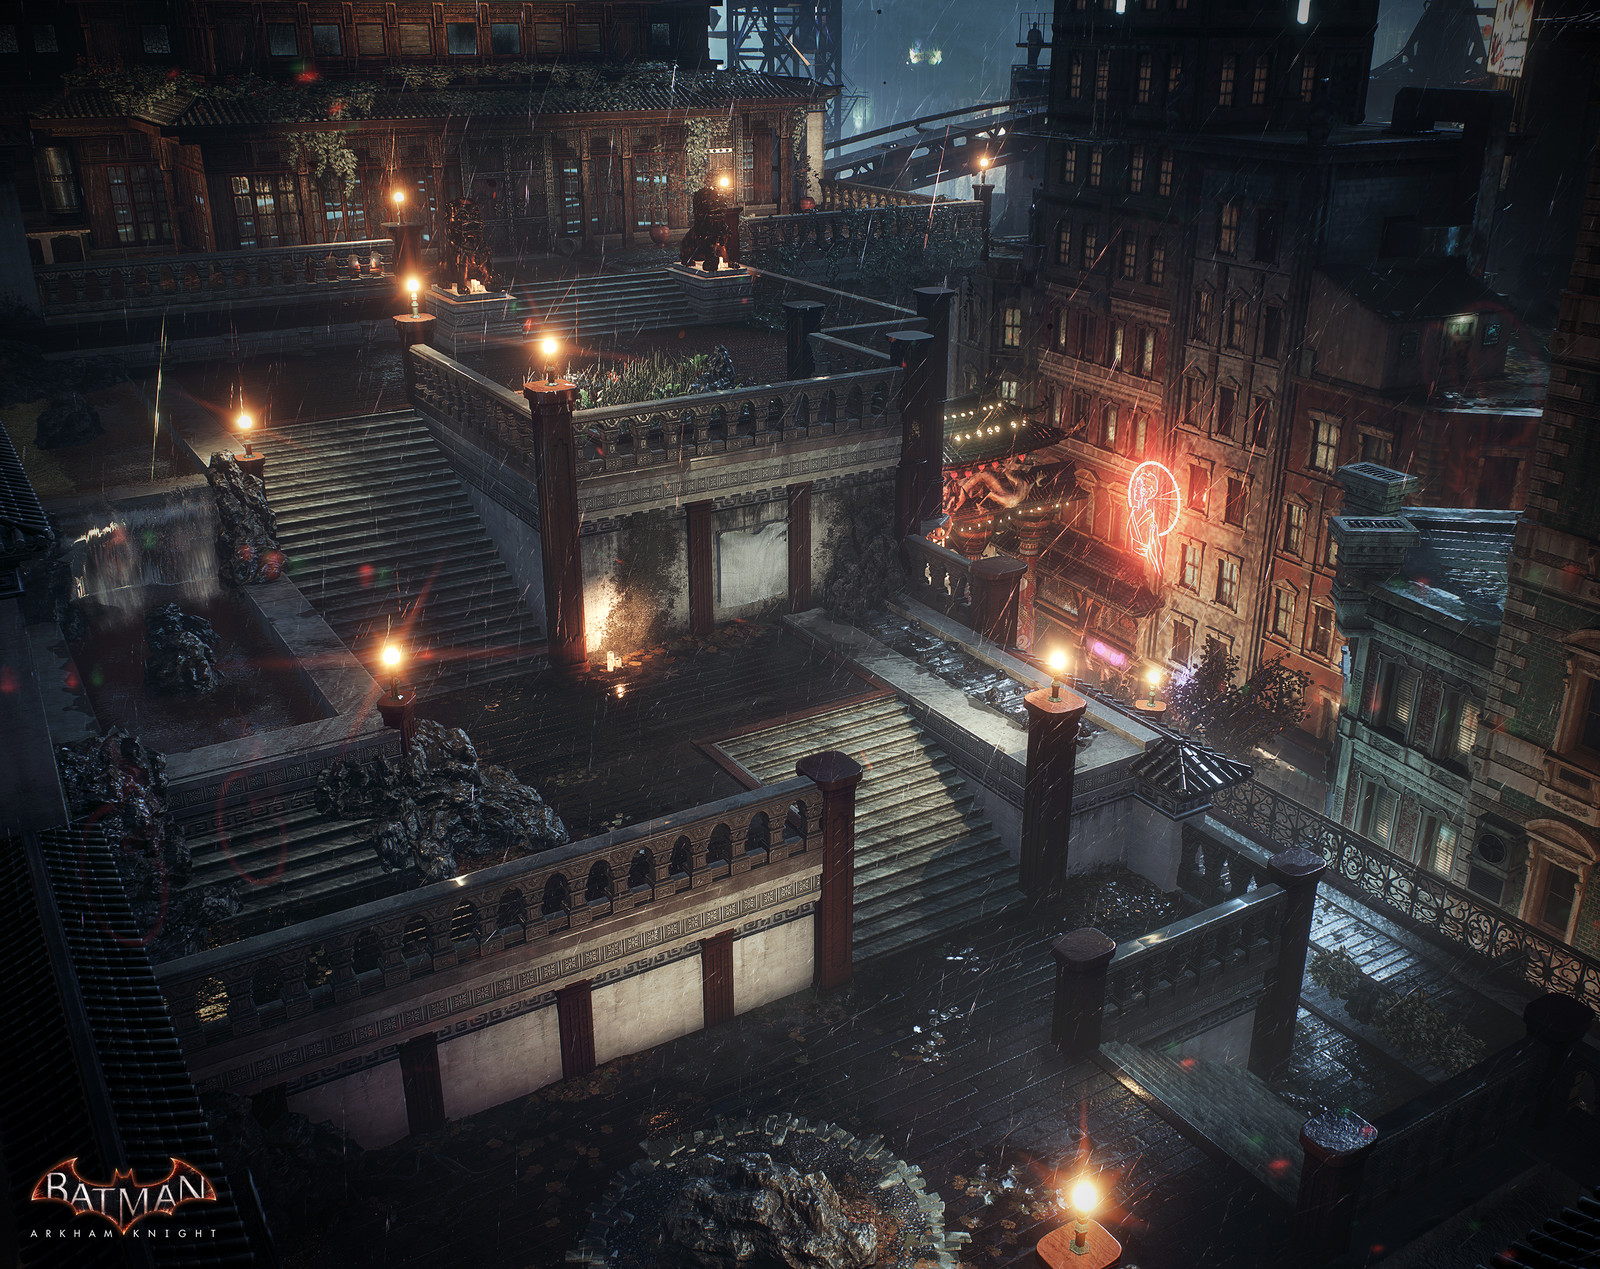 Batman Arkham Knight Chinatown Penthouse Temple Gardens